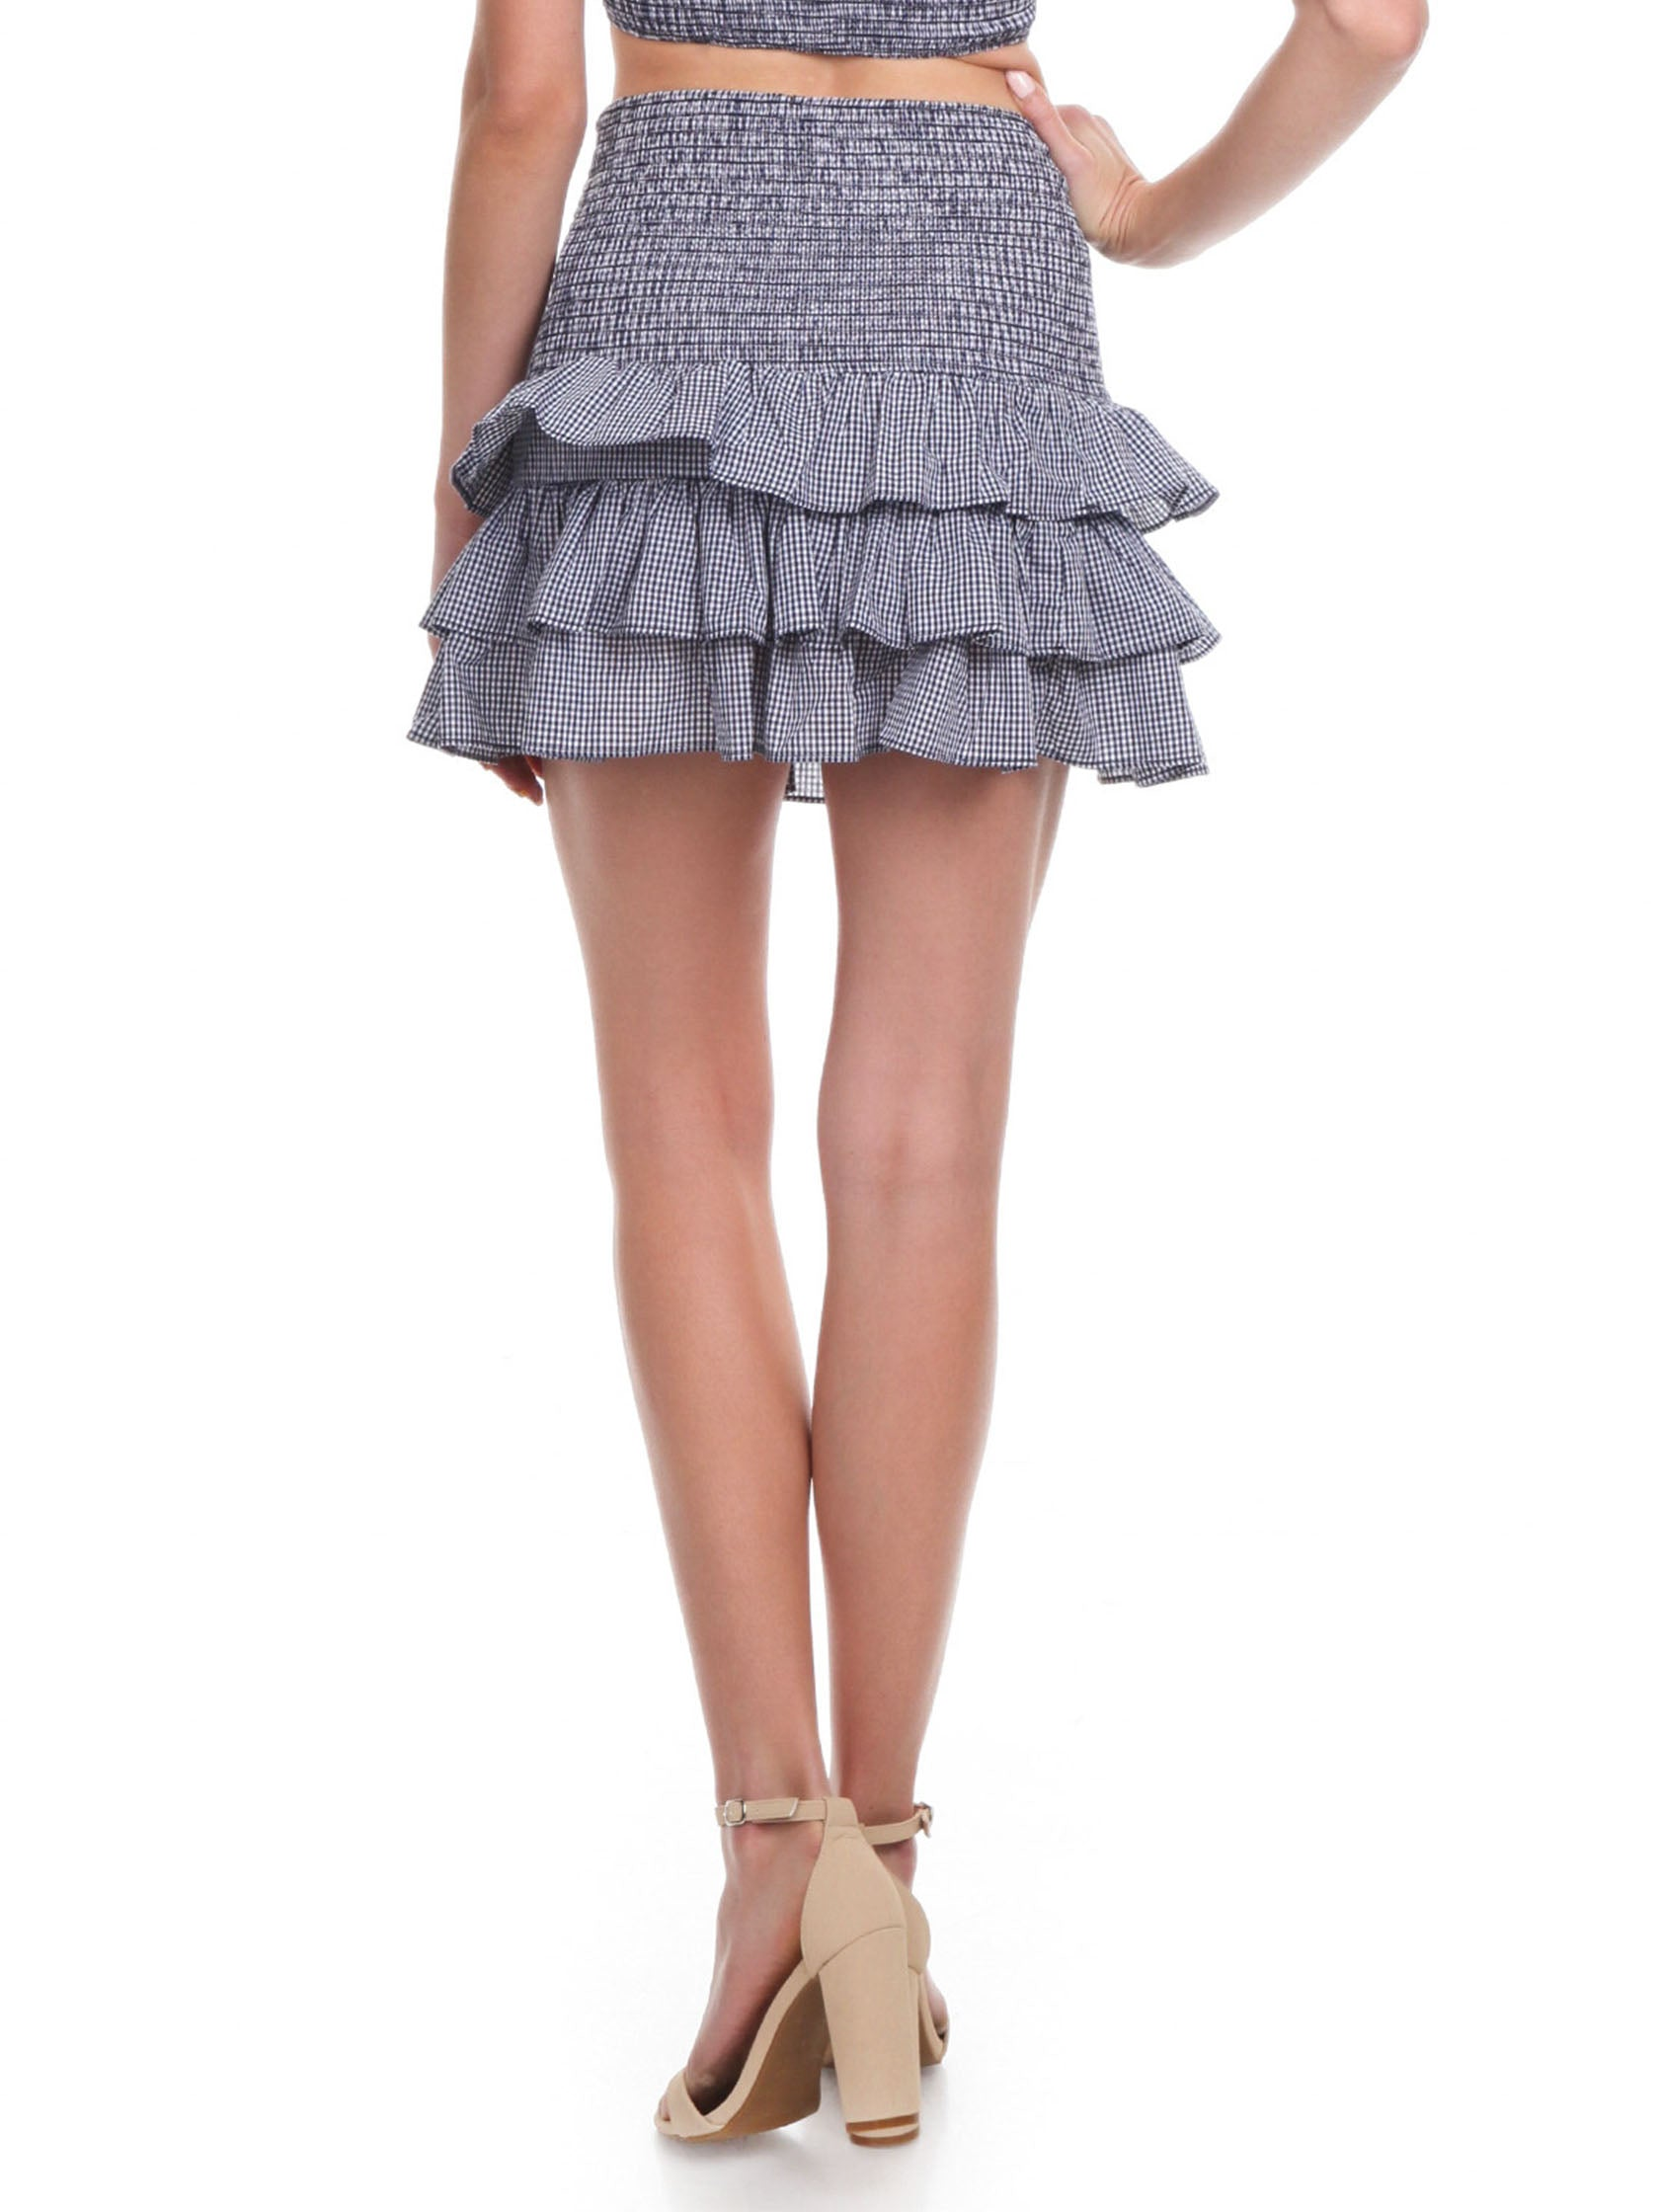 Women outfit in a skirt rental from Tularosa called Drea Skirt